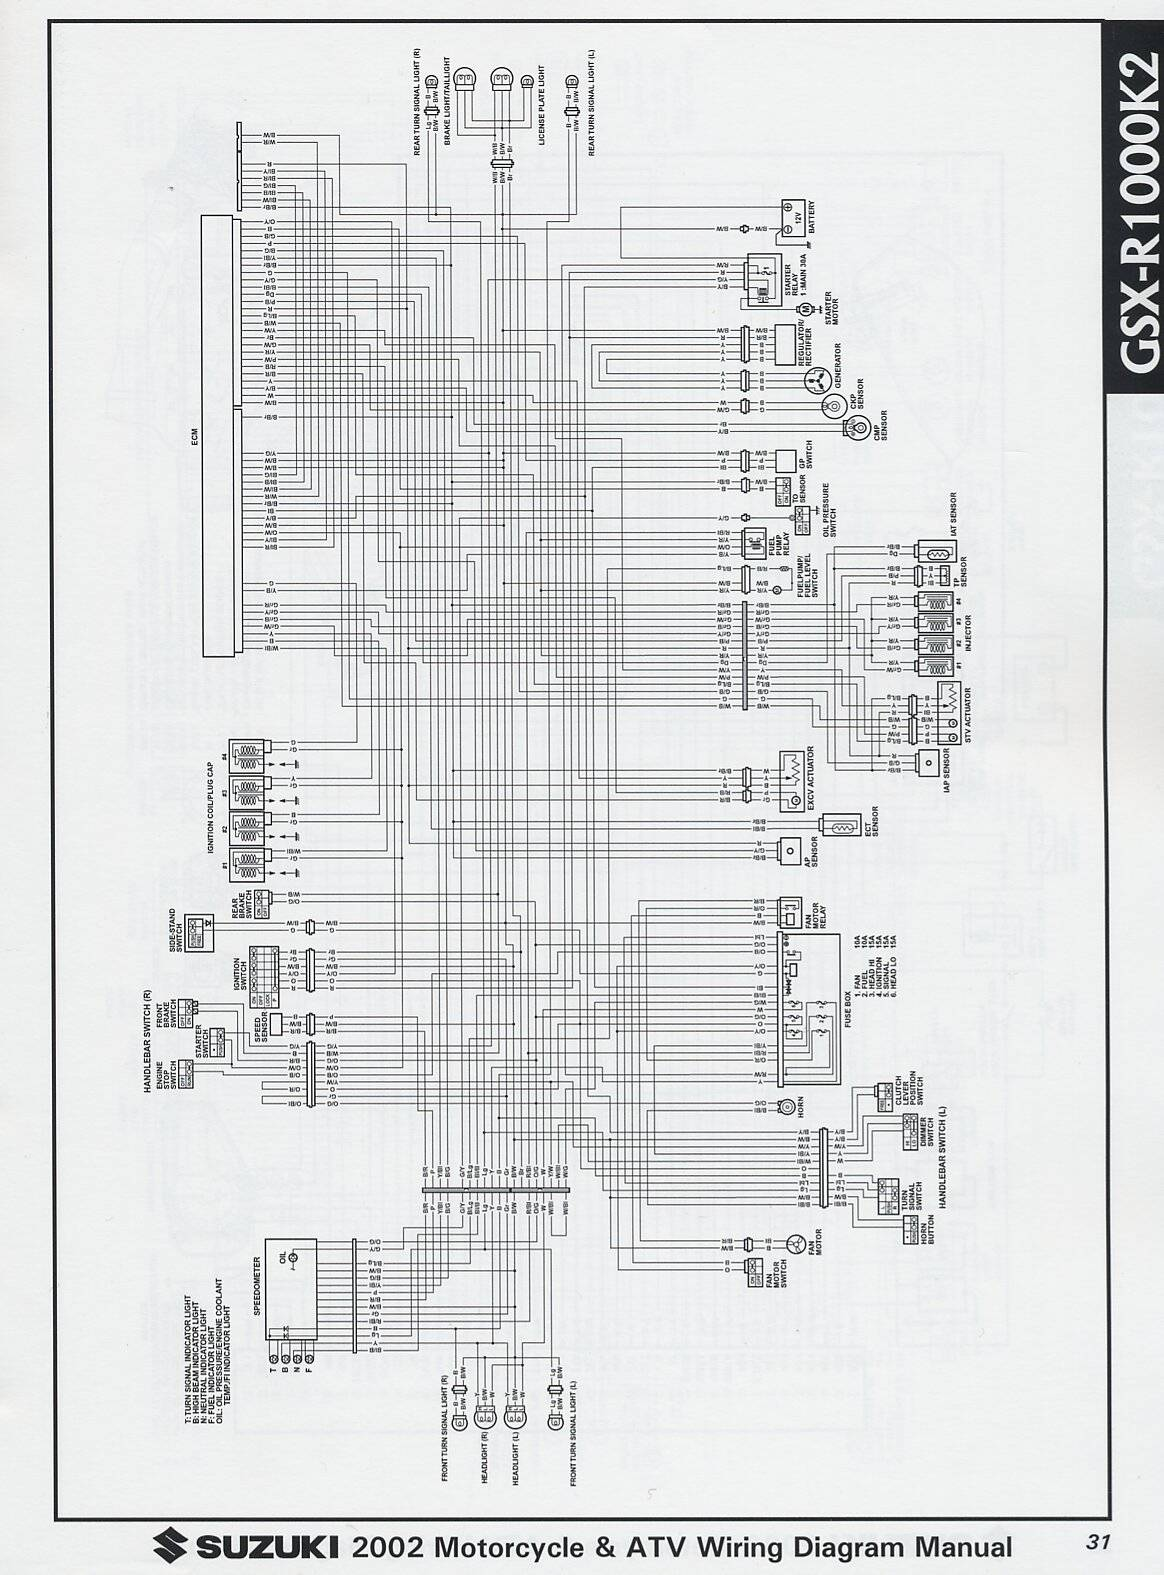 stereo wiring diagram 2003 chevy avalanche wiring diagram 2003 gsx r1000 #3